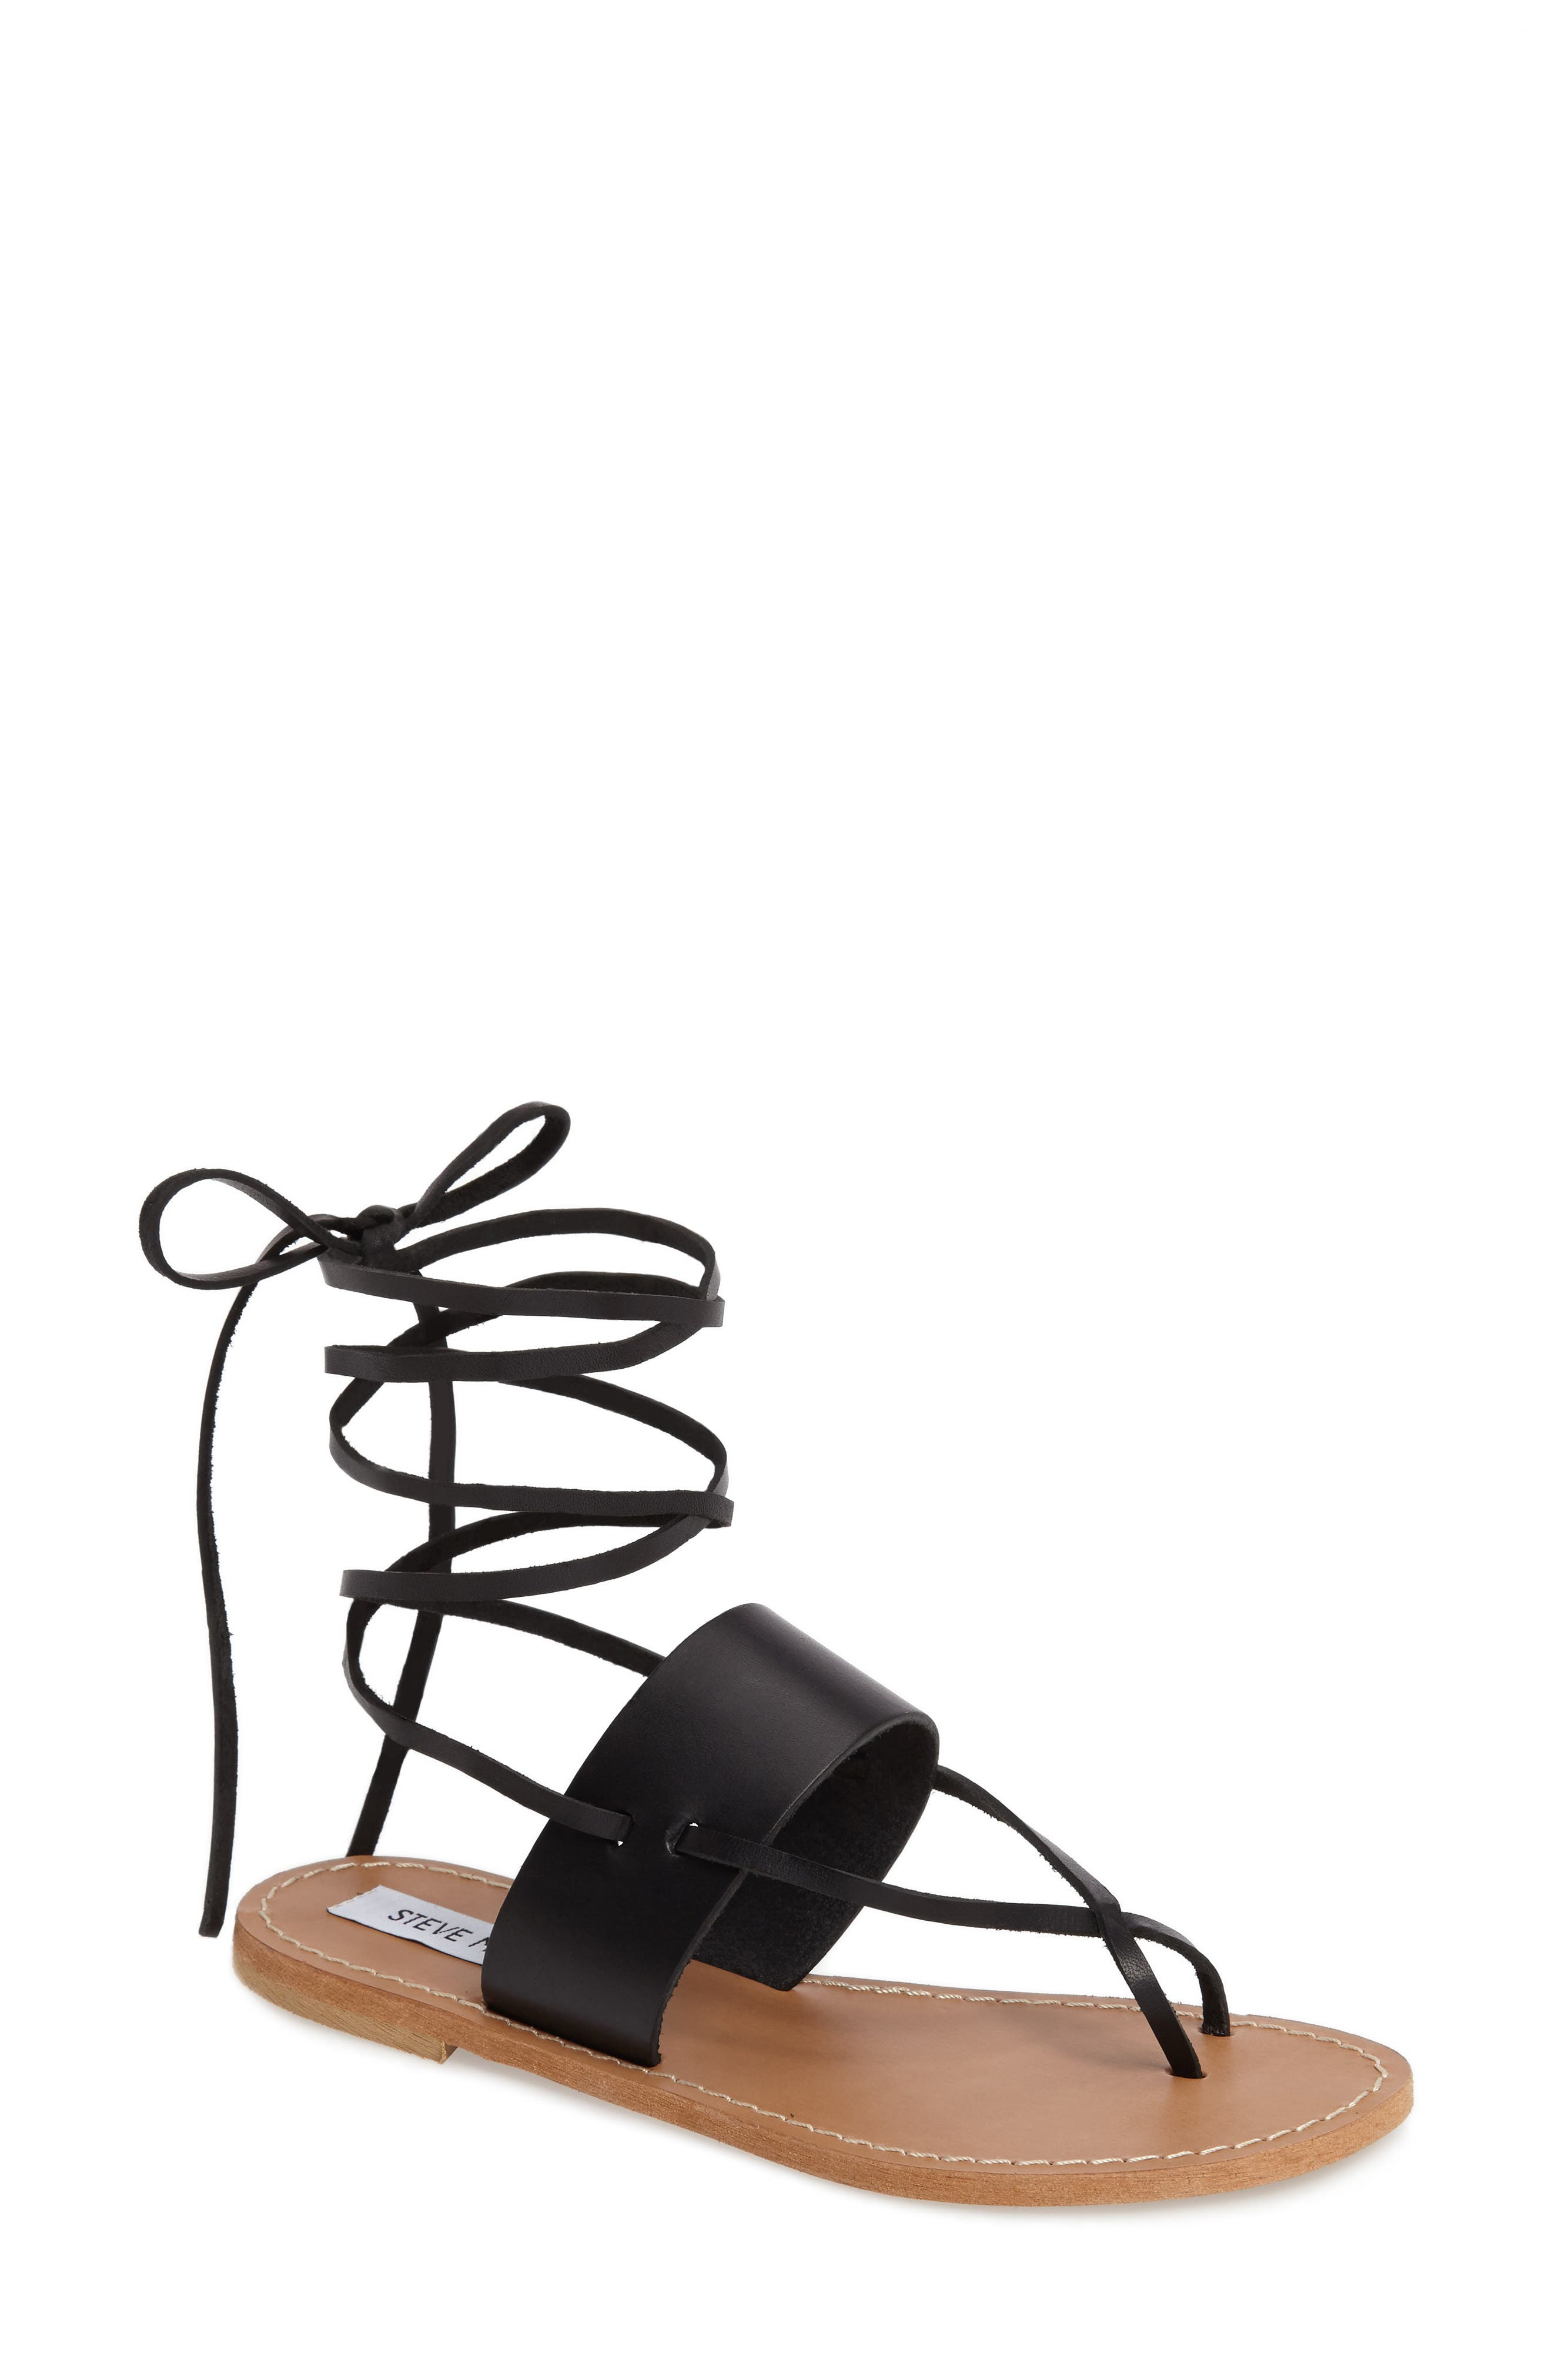 Alternate Image 1 Selected - Steve Madden Bianca Lace-Up Sandal (Women)